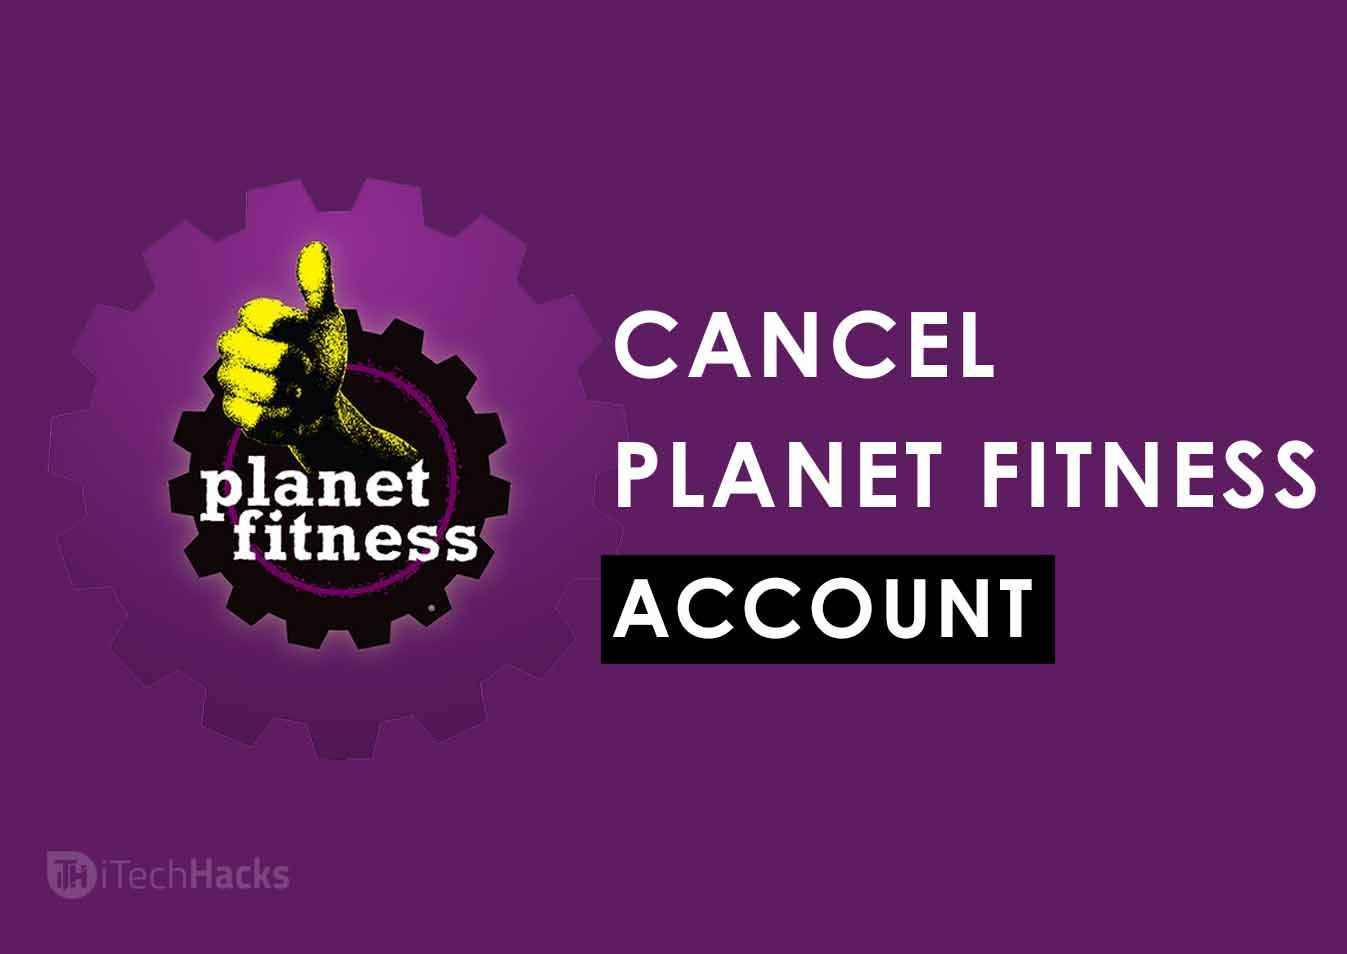 How To Cancel Your Planet Fitness Account Planet Fitness Workout Planet Fitness Machines Planet Fitness Gym